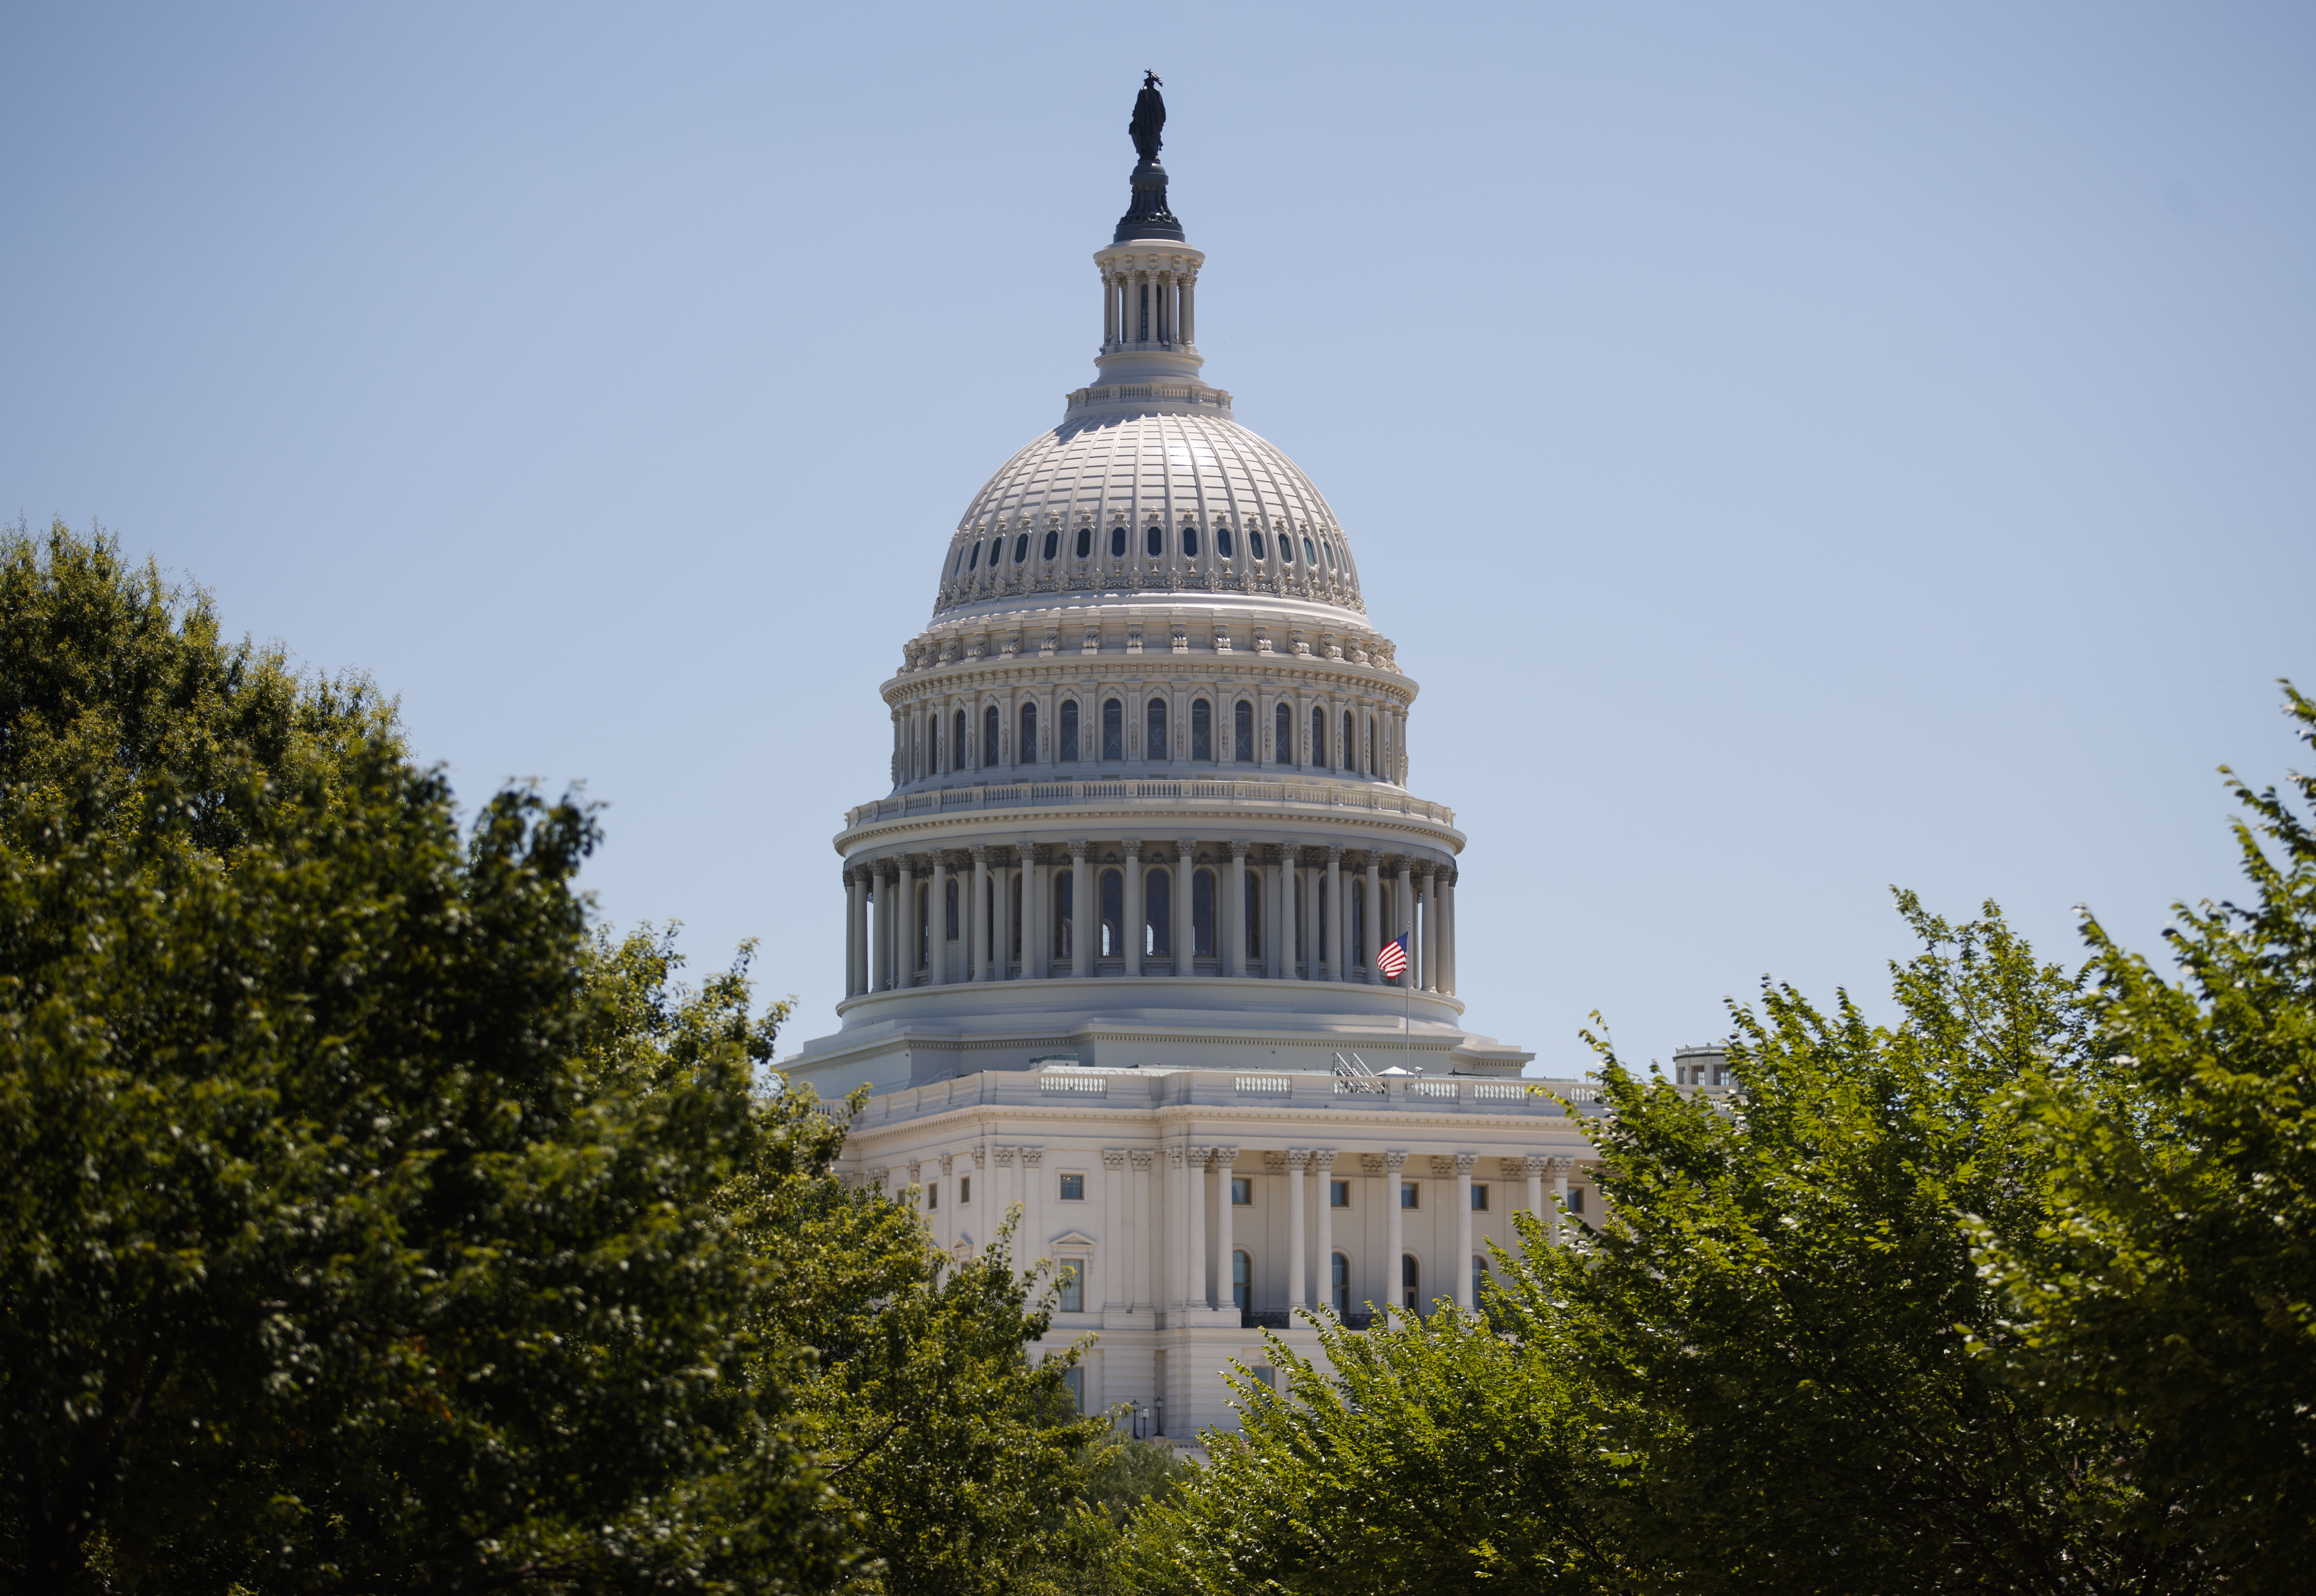 Both chambers of Congress have approved legislation that would shift a Department of Homeland Security agency to focus more on critical infrastructure cybersecurity. (Carolyn Kaster/AP)